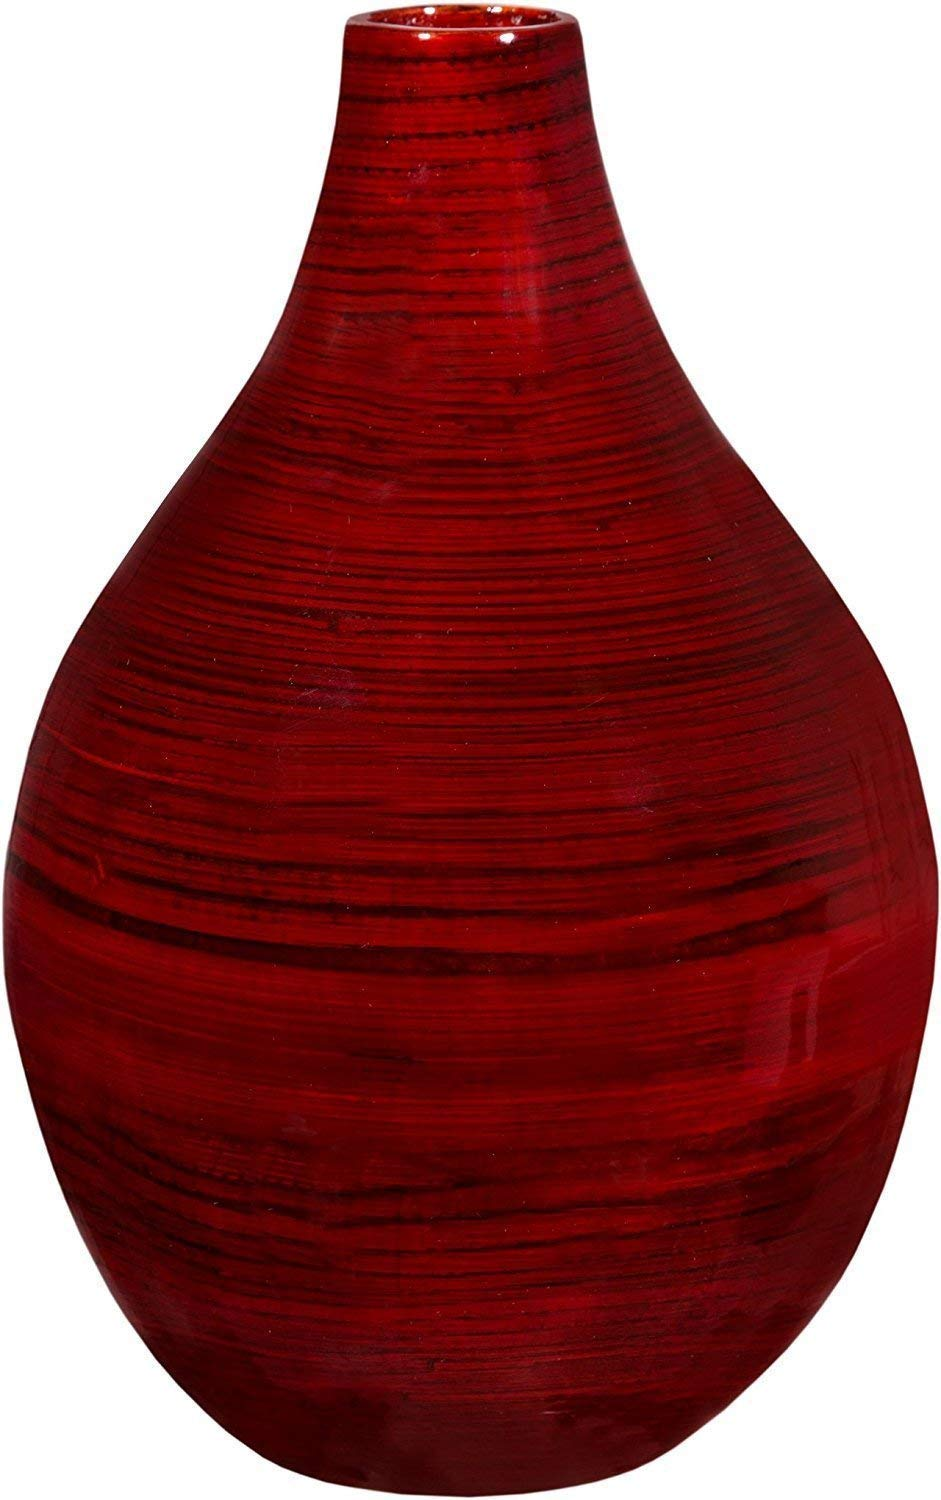 Decorative vase for home décor by Emenest | Holiday Party Table Centerpiece | Real Painted Bamboo Wood Accent Piece | Deep Red Color |Lightweight Yet Sturdy for Home or Office | Best Housewarming Gift - THE EMENEST CENTERPIECE VASE IS BOTH ELEGANT AND DURABLE to suit your many needs. The high-quality form and appearance of this wooden vase is akin to a ceramic or glass vase, but with the added convenience of being extremely lightweight. Unlike other vases, this modern vase won't shatter if toppled over. That is why this is the perfect choice for a high-traffic, commercial setting such as a restaurant, hotel, or bar. BEAUTIFUL HIGH GLOSS WOOD GRAIN DESIGN FOR A MODERN RUSTIC LOOK: Made from smooth bamboo material, the Emenest Flower Vase resists dents and scratches to keep a pristine appearance. Whether used with silk flowers or without, give your home, office, or coffee table the facelift it deserves. DEEP RED TONES PERFECT FOR CHRISTMAS PARTY DÉCOR: Featuring a rounded base and a smooth round rim, the flared design and burgundy red hue of this vase will take your holiday party table setting to the next level. The tall and narrow neck makes this vase easier to hold and transport. - vases, kitchen-dining-room-decor, kitchen-dining-room - 61hCsIj2evL -